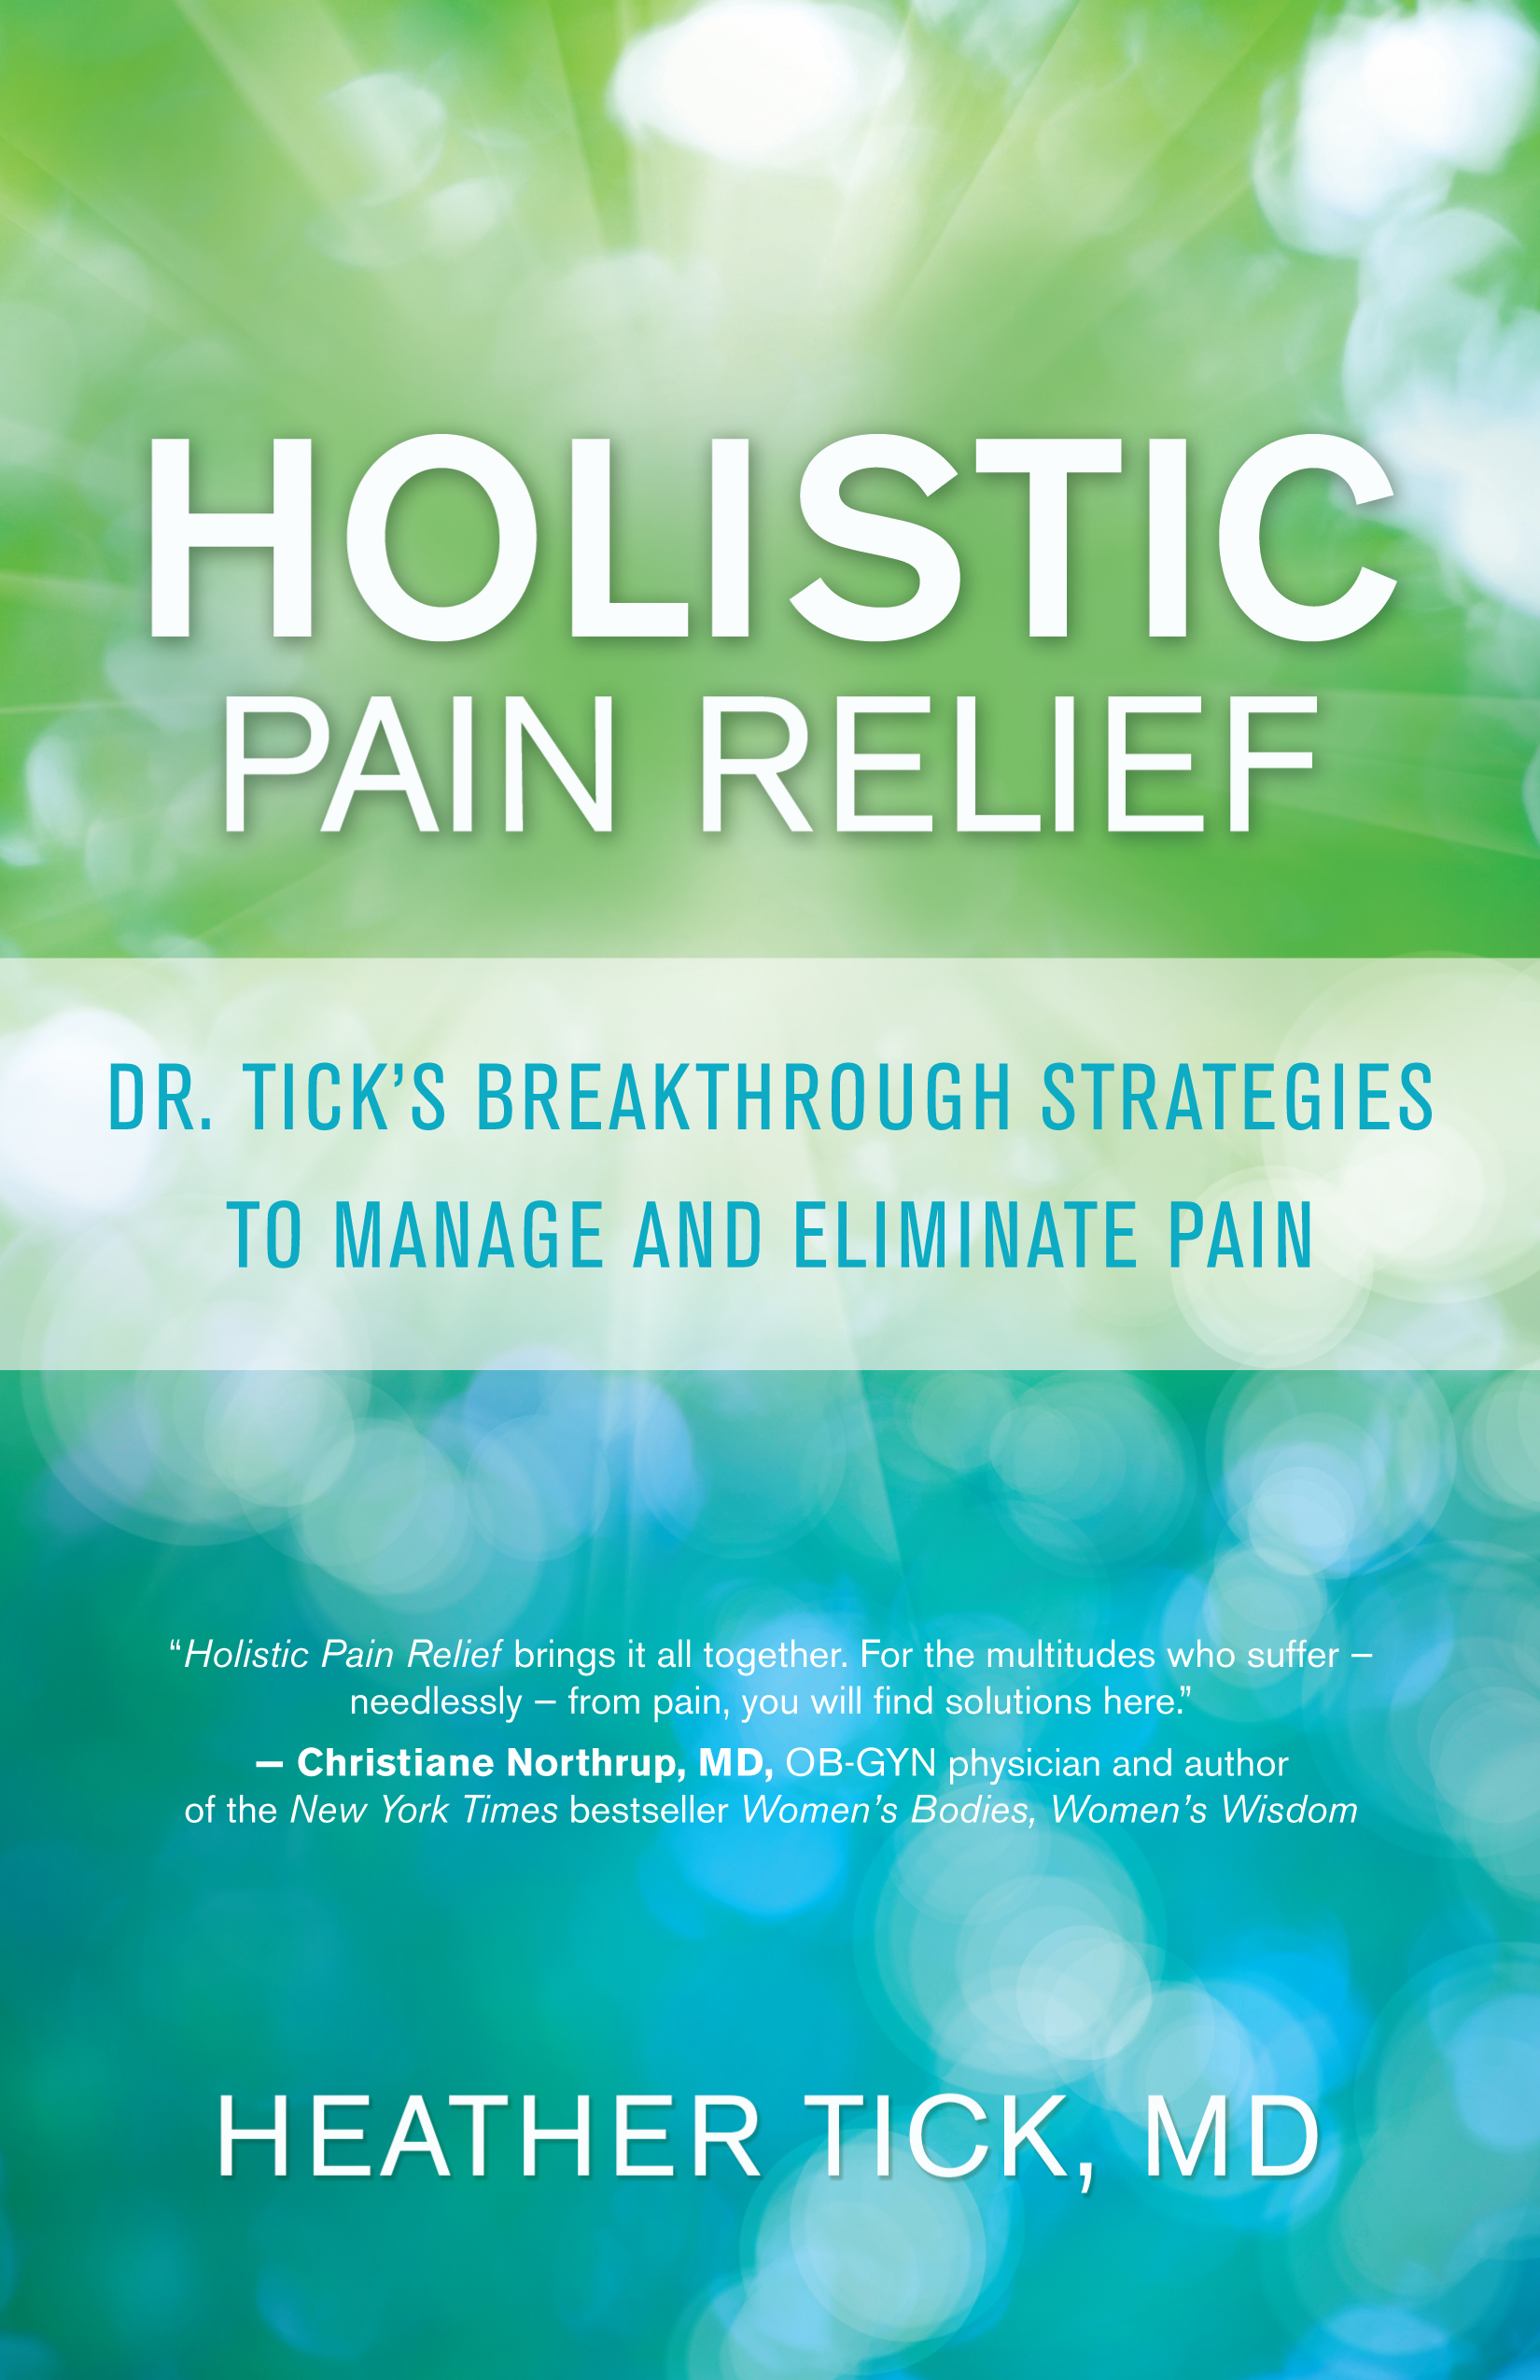 holistic pain management Integrative pain medicine: a holistic model of care heather tick, md gunn-loke endowed professor for integrative pain medicine management than on health pro.